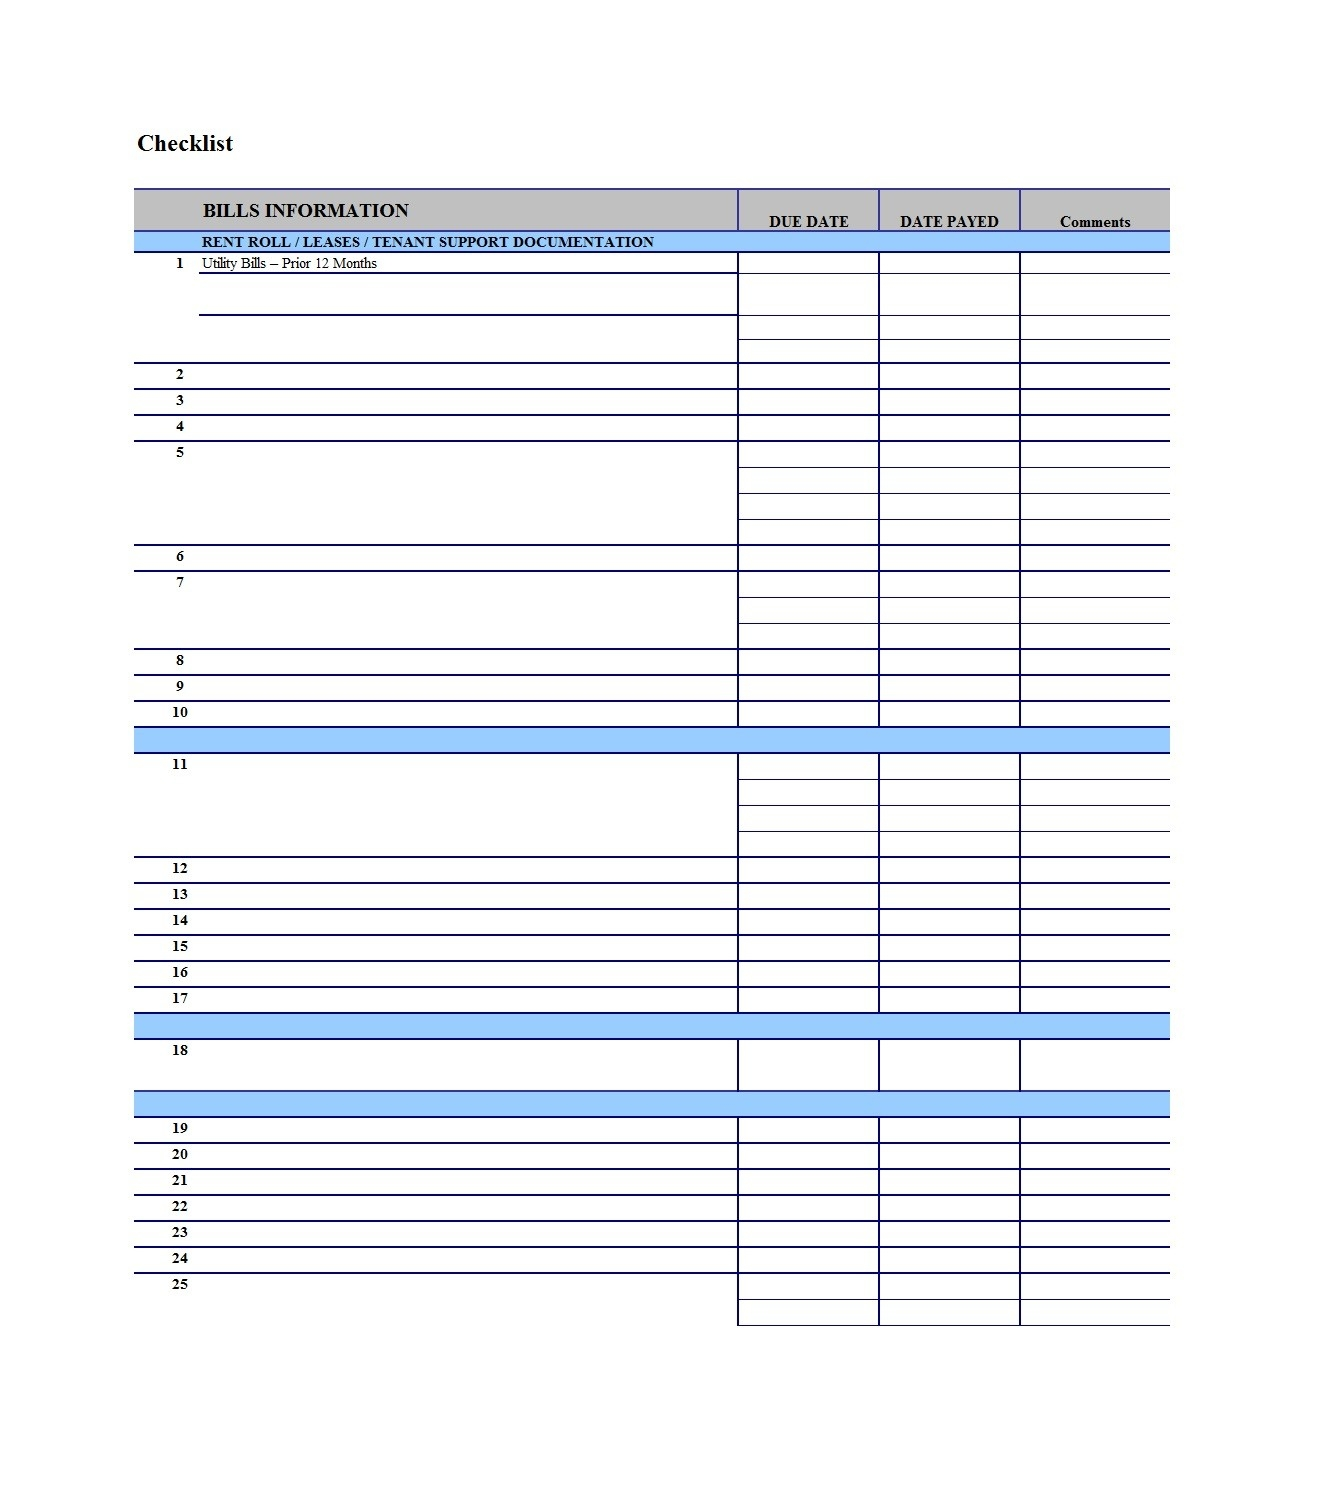 011 Monthly Bill Template Pay Checklist Plan Fascinating-Free Bill Pay Templates Printable